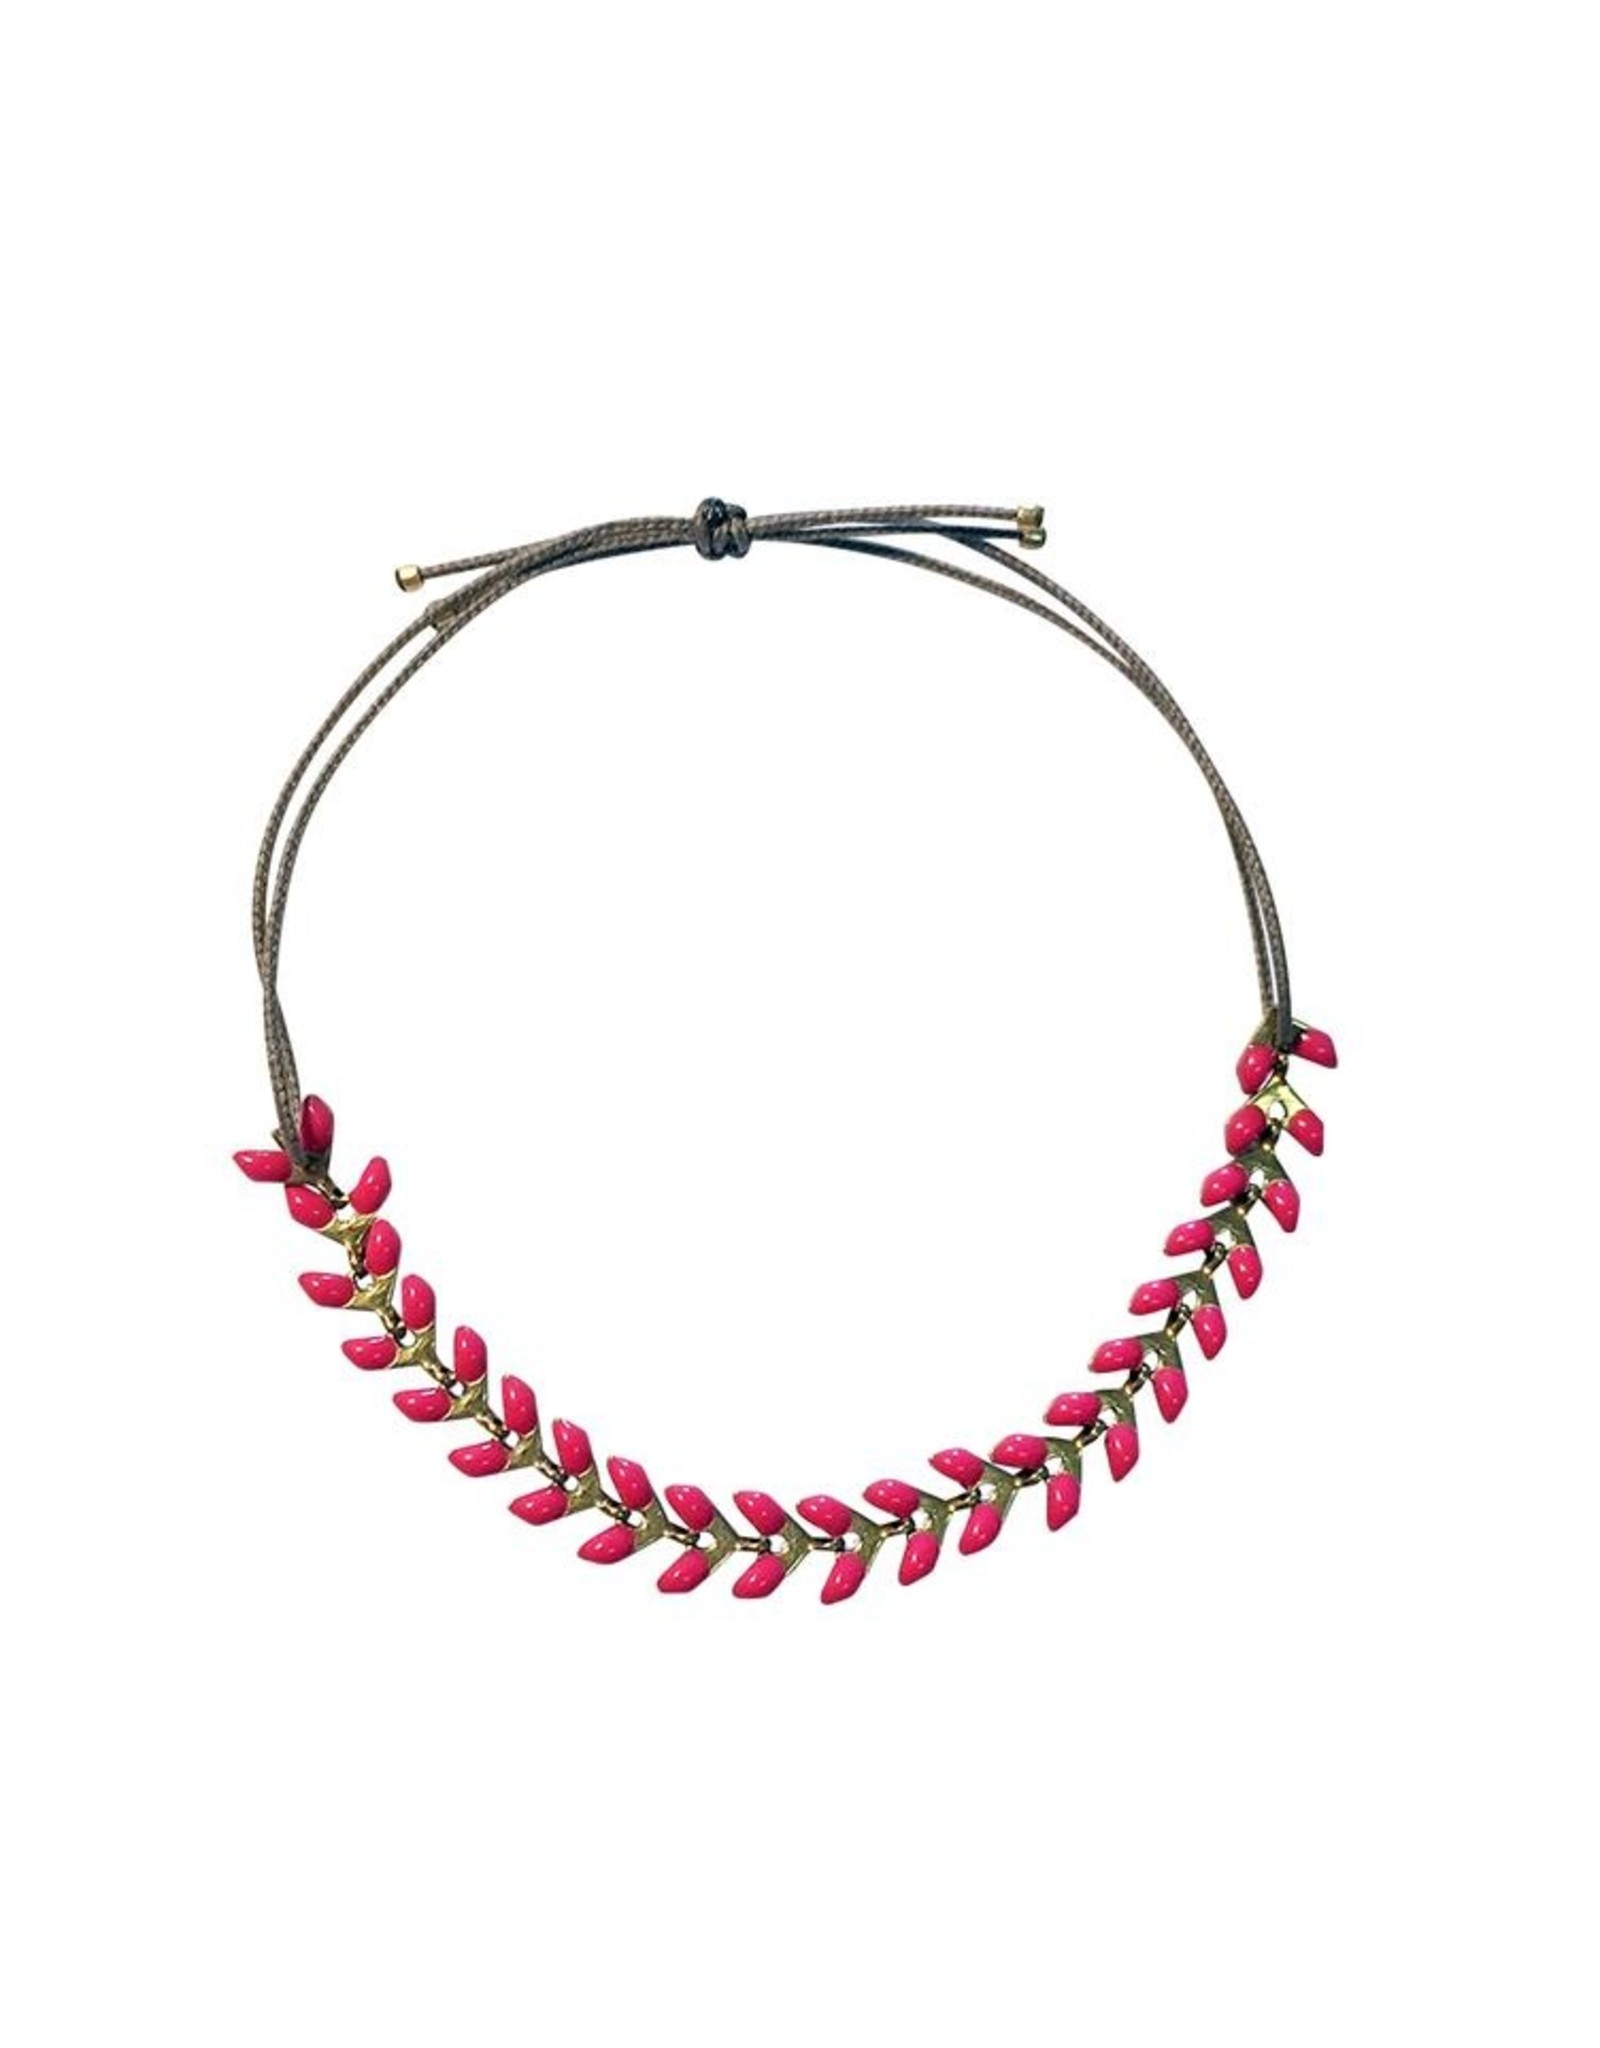 Armband Emaille - Himbeere